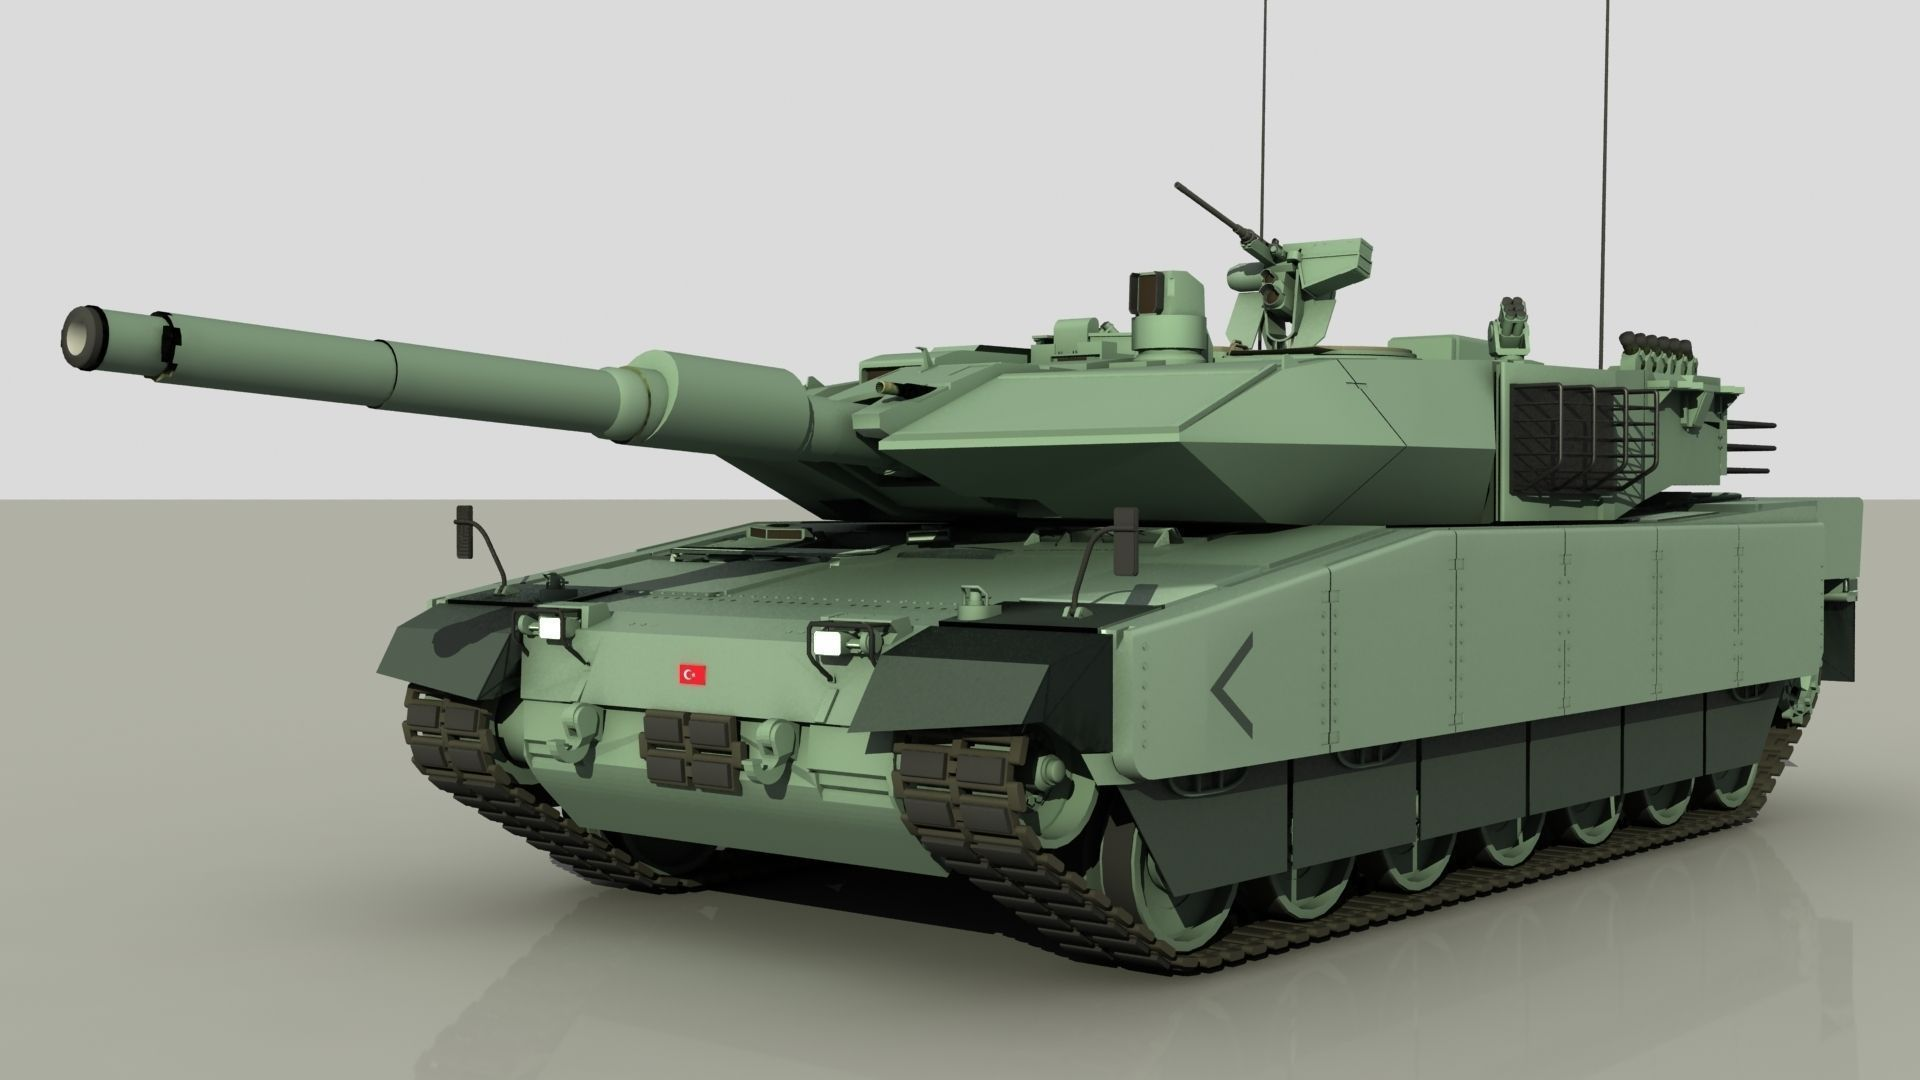 Turkey South Korea S Altay Tank Project Muharebe Tank Askeri